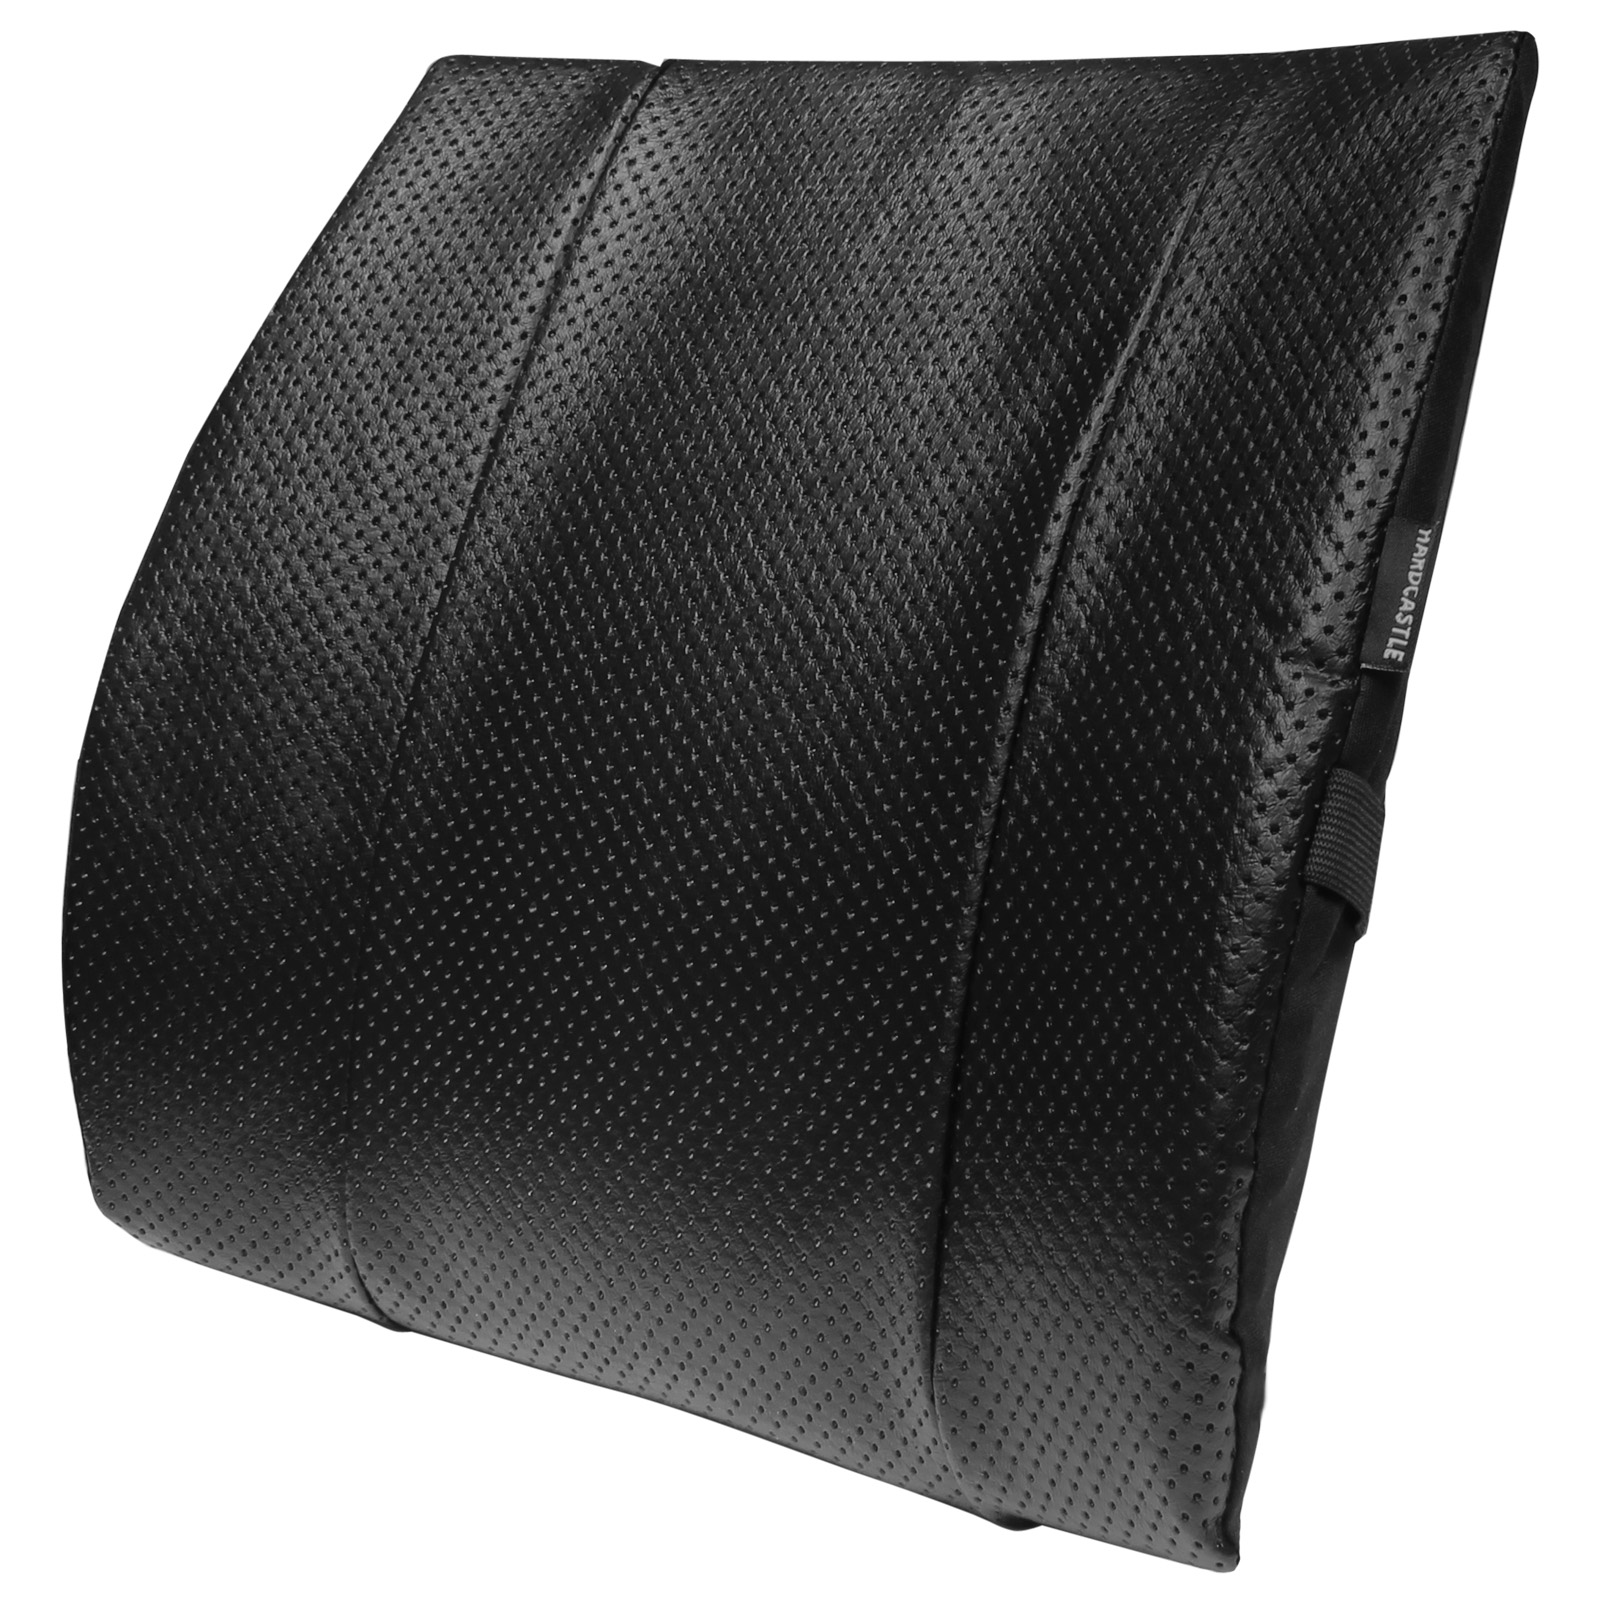 LOWER BACK LUMBAR SUPPORT SEAT//CHAIR CUSHION CAR//HOME//OFFICE LUMBER LEATHER LOOK